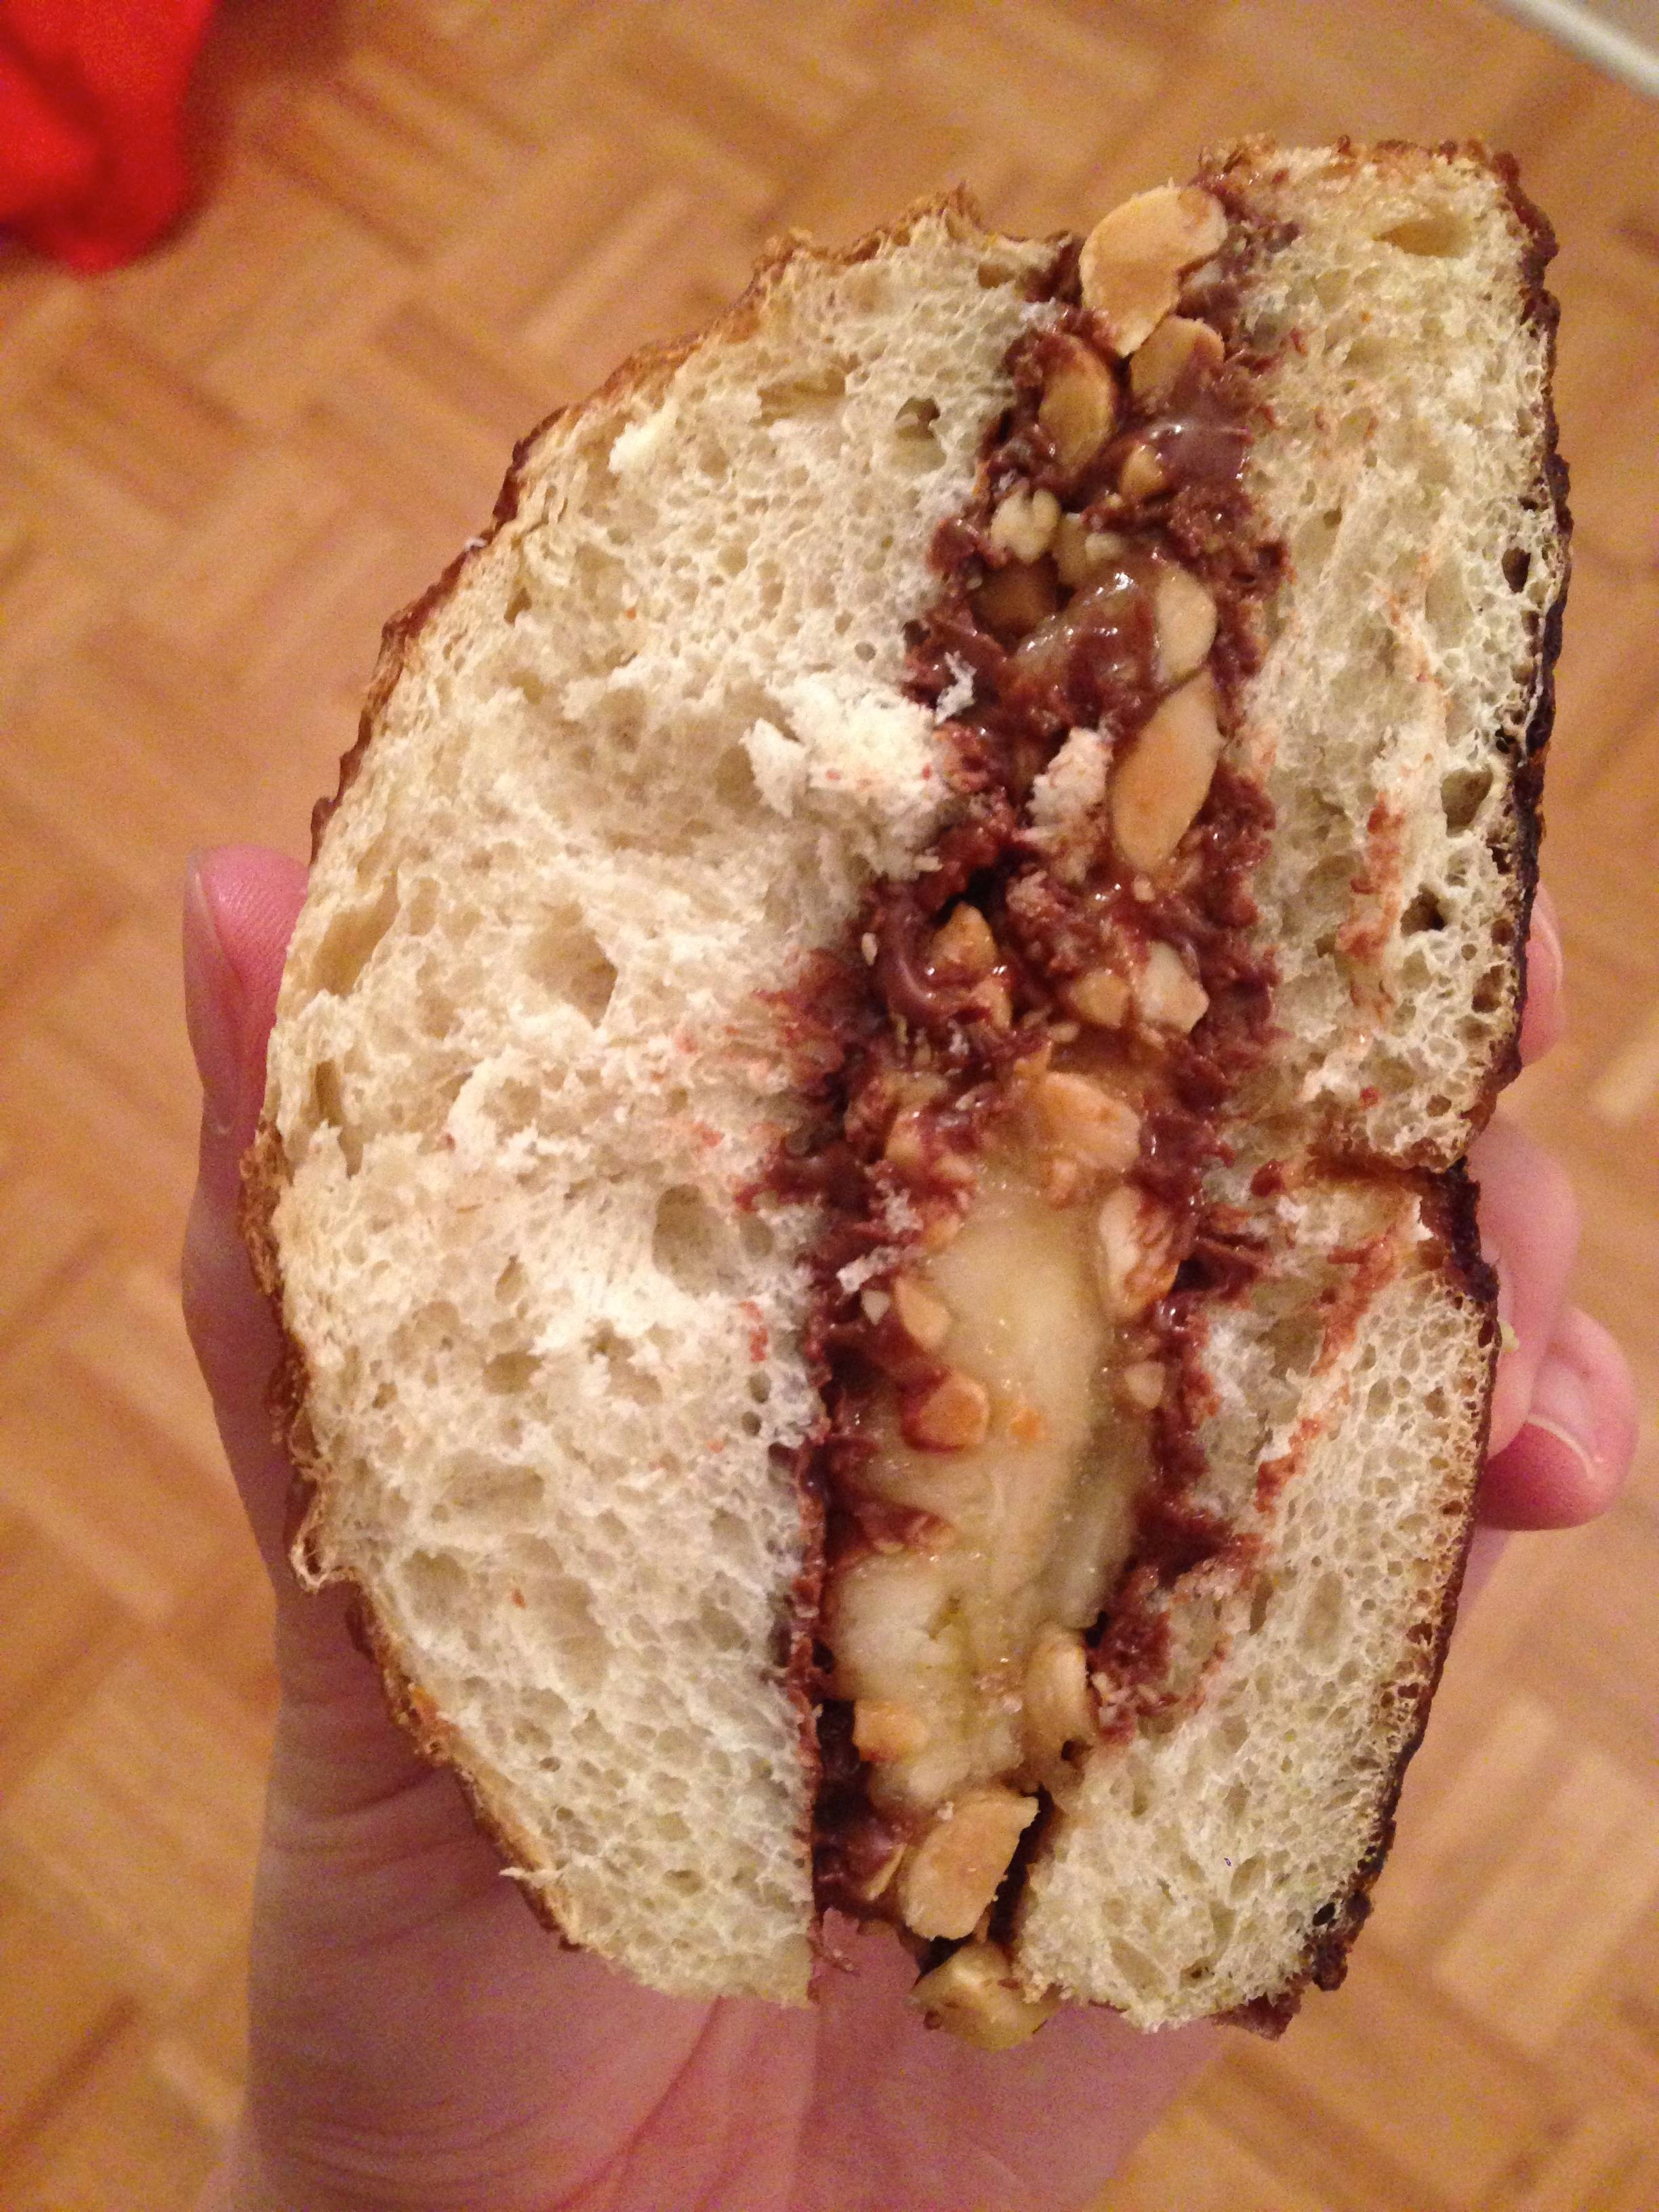 Nutella, Banana and Peanuts on Pretzel Bread